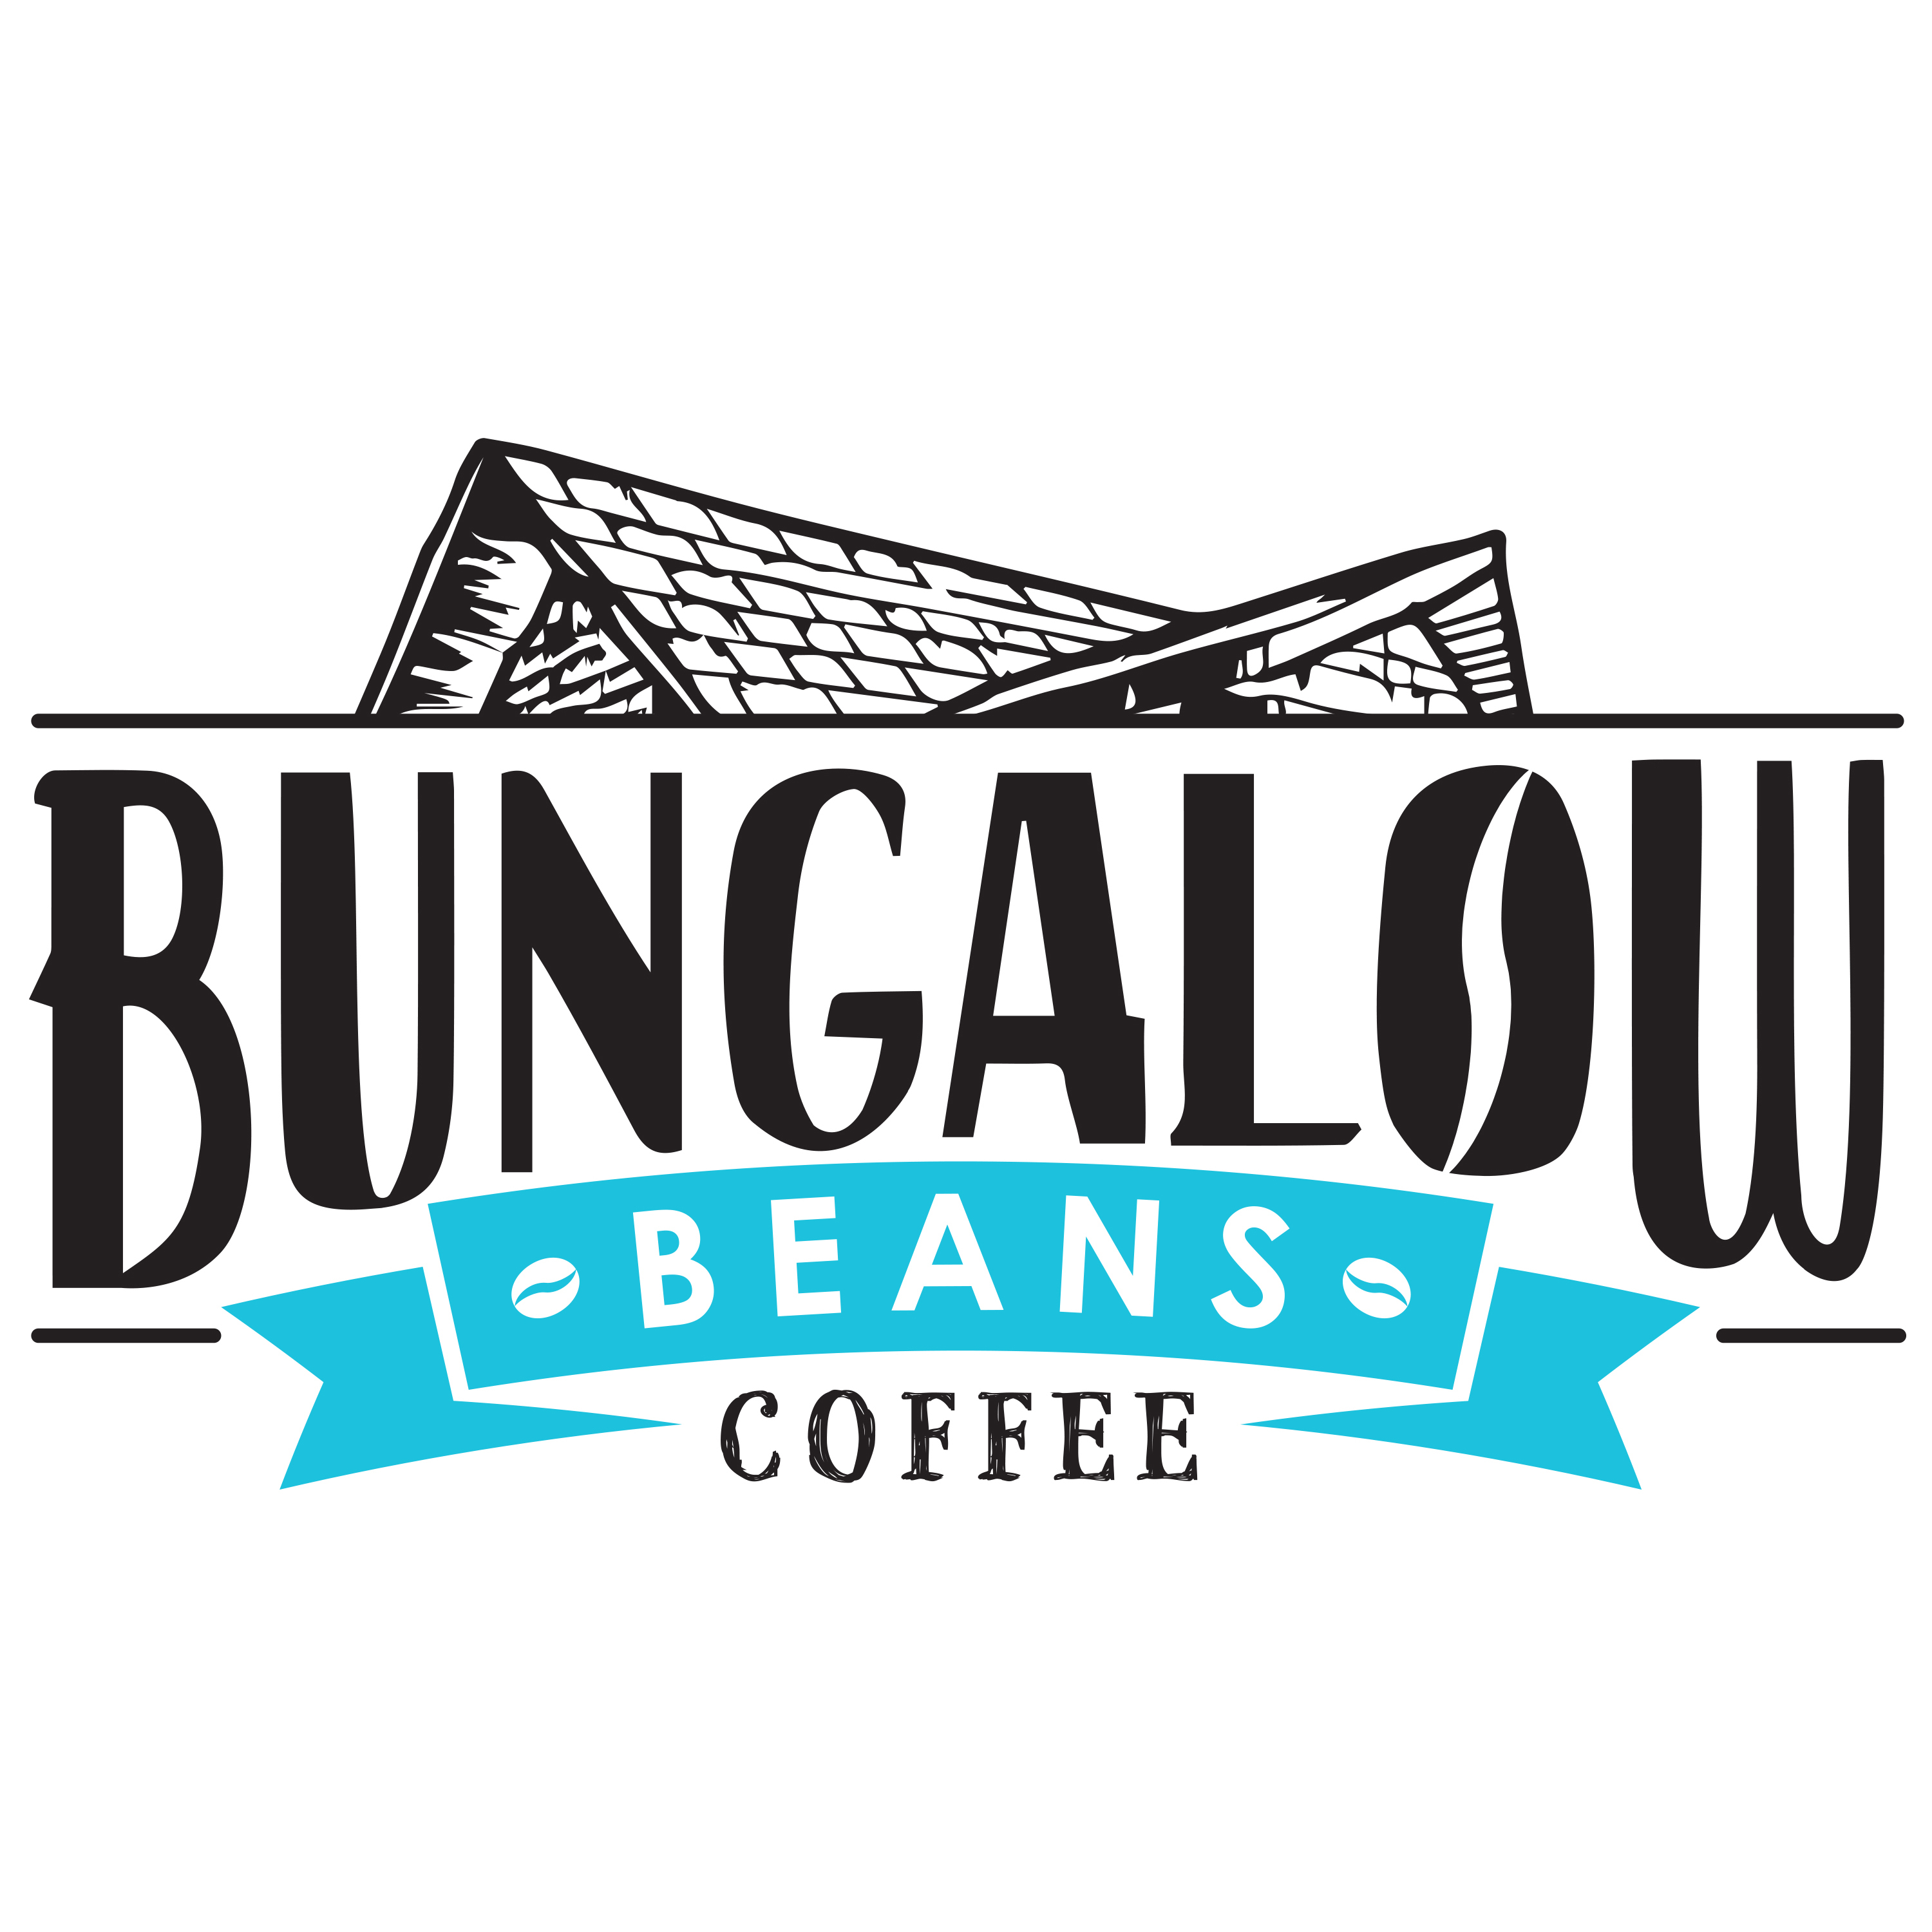 Bungalow Beans Coffee